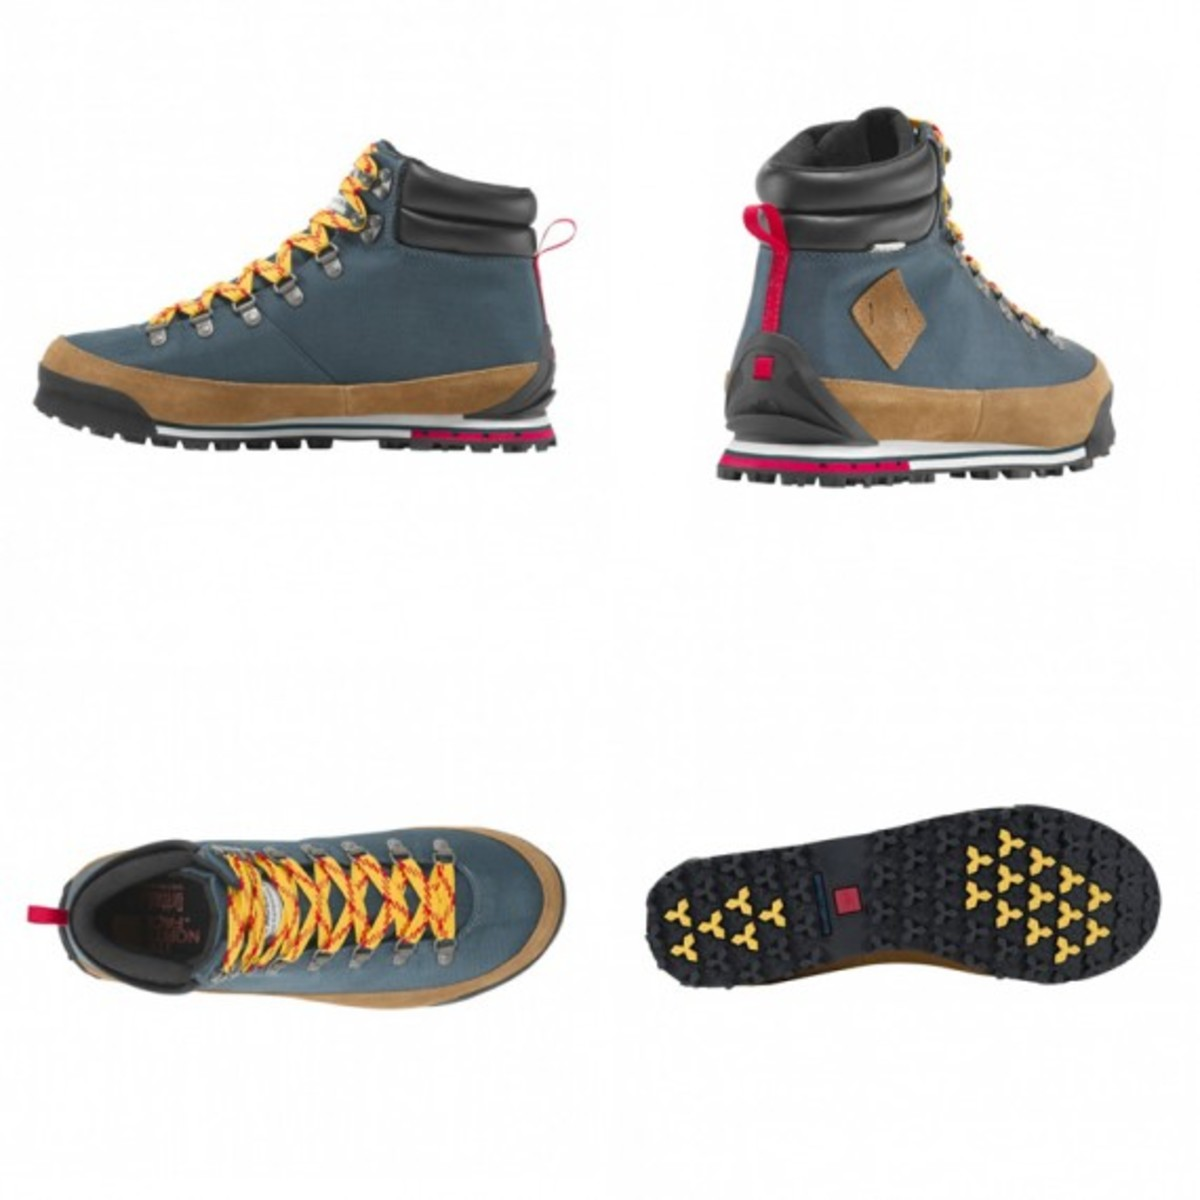 the-north-face-back-to-berkley-boots-02